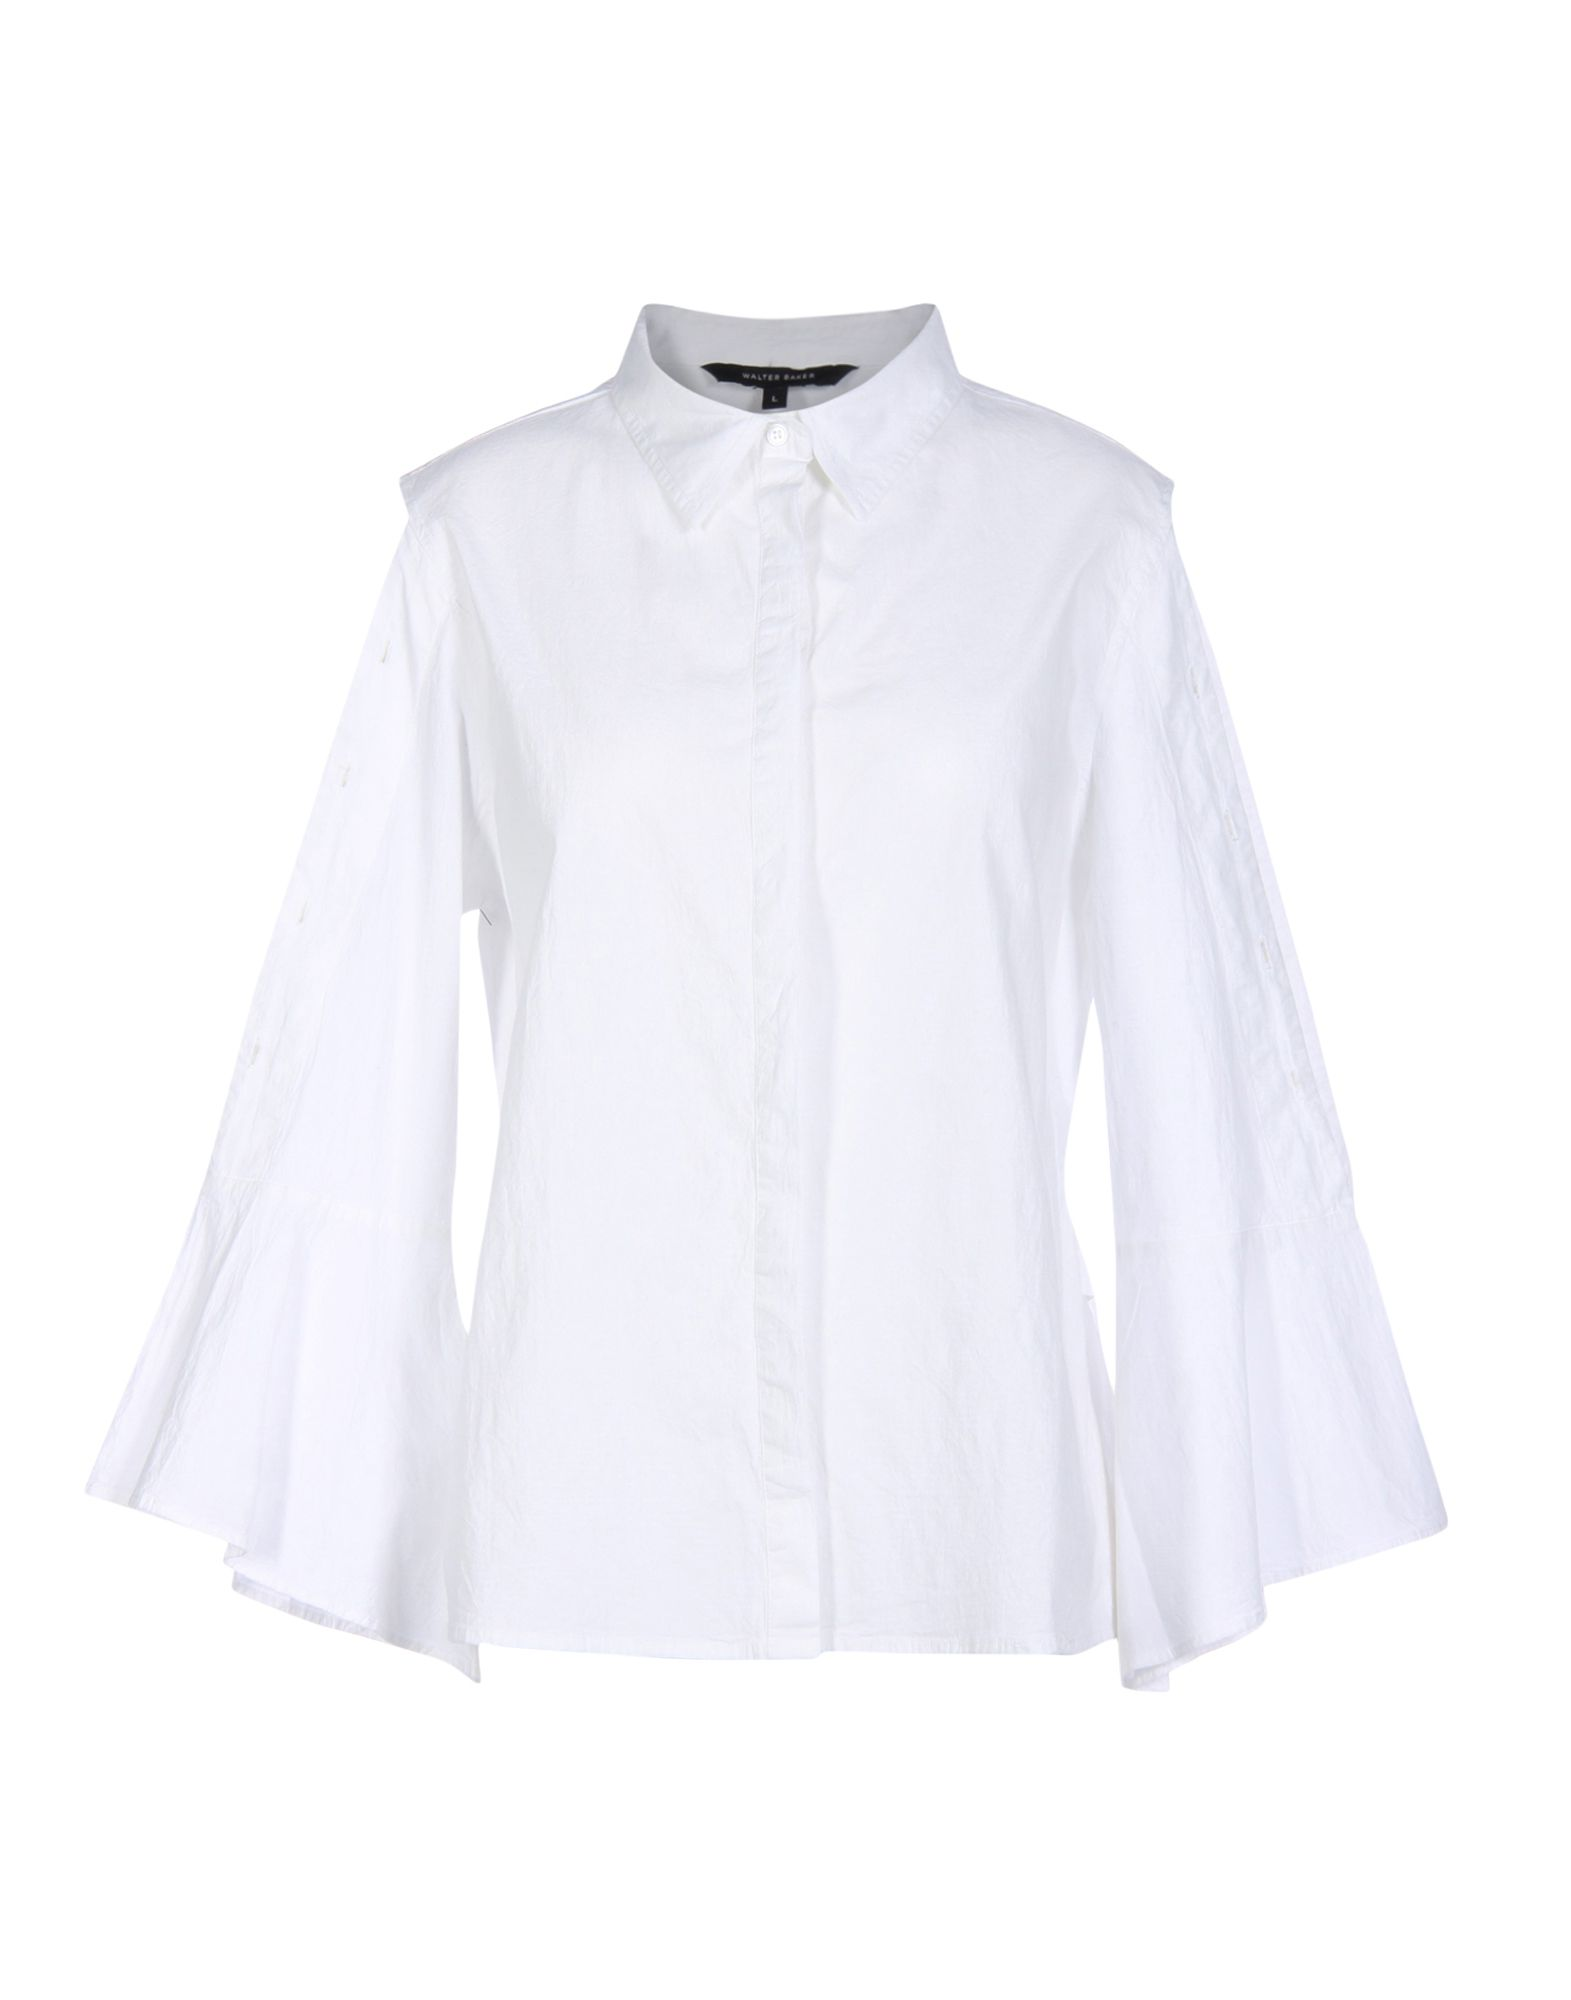 W118 BY WALTER BAKER Solid Color Shirts & Blouses in White